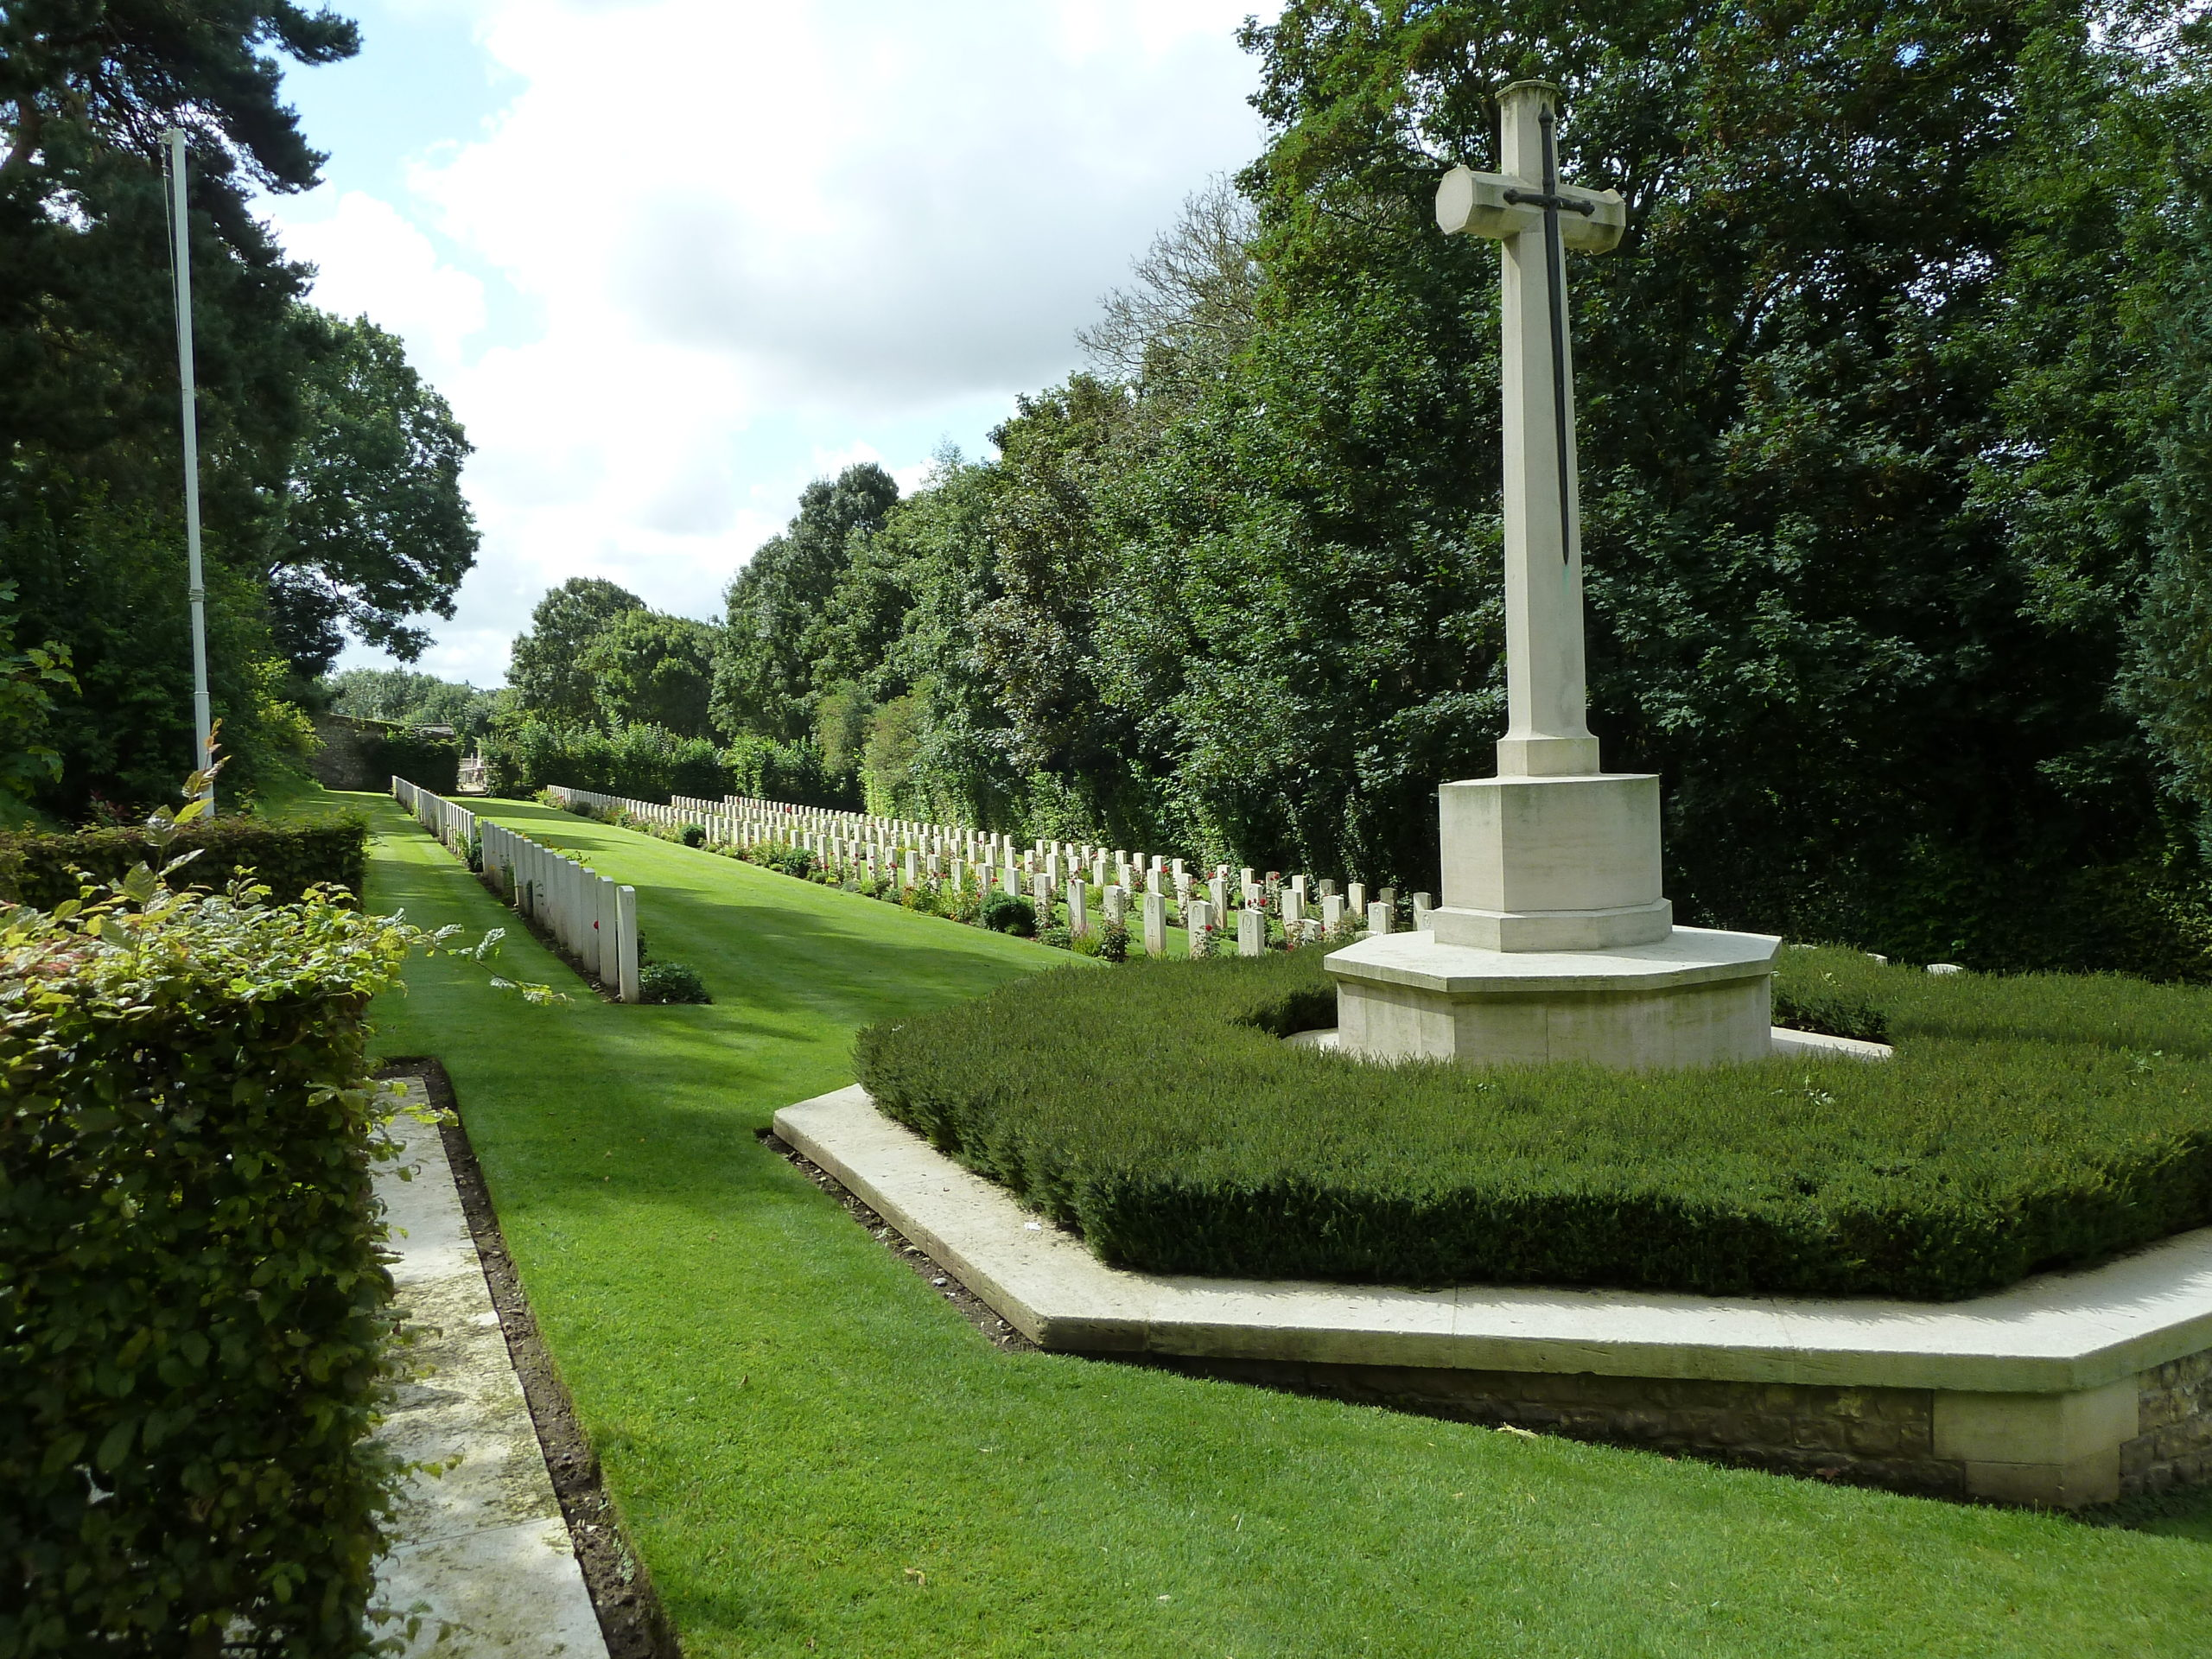 The St Valery cemetery commemorates so many north-east soldiers.